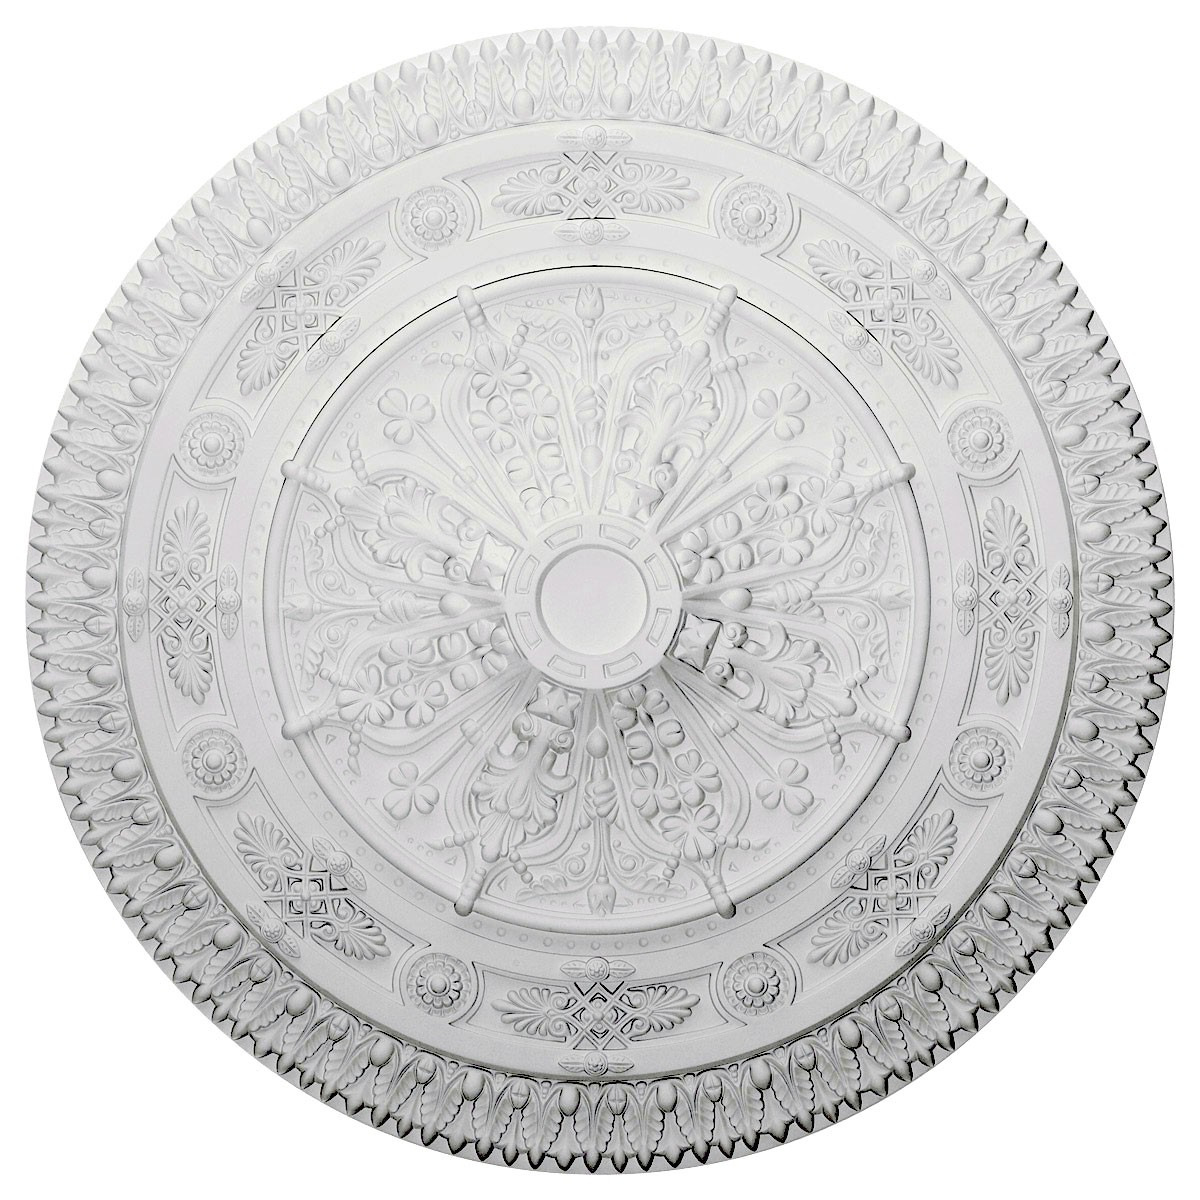 """EM-CM37NA - 37 1/2""""OD x 3 3/8""""P Naple Ceiling Medallion (Fits Canopies up to 3 3/8"""")"""